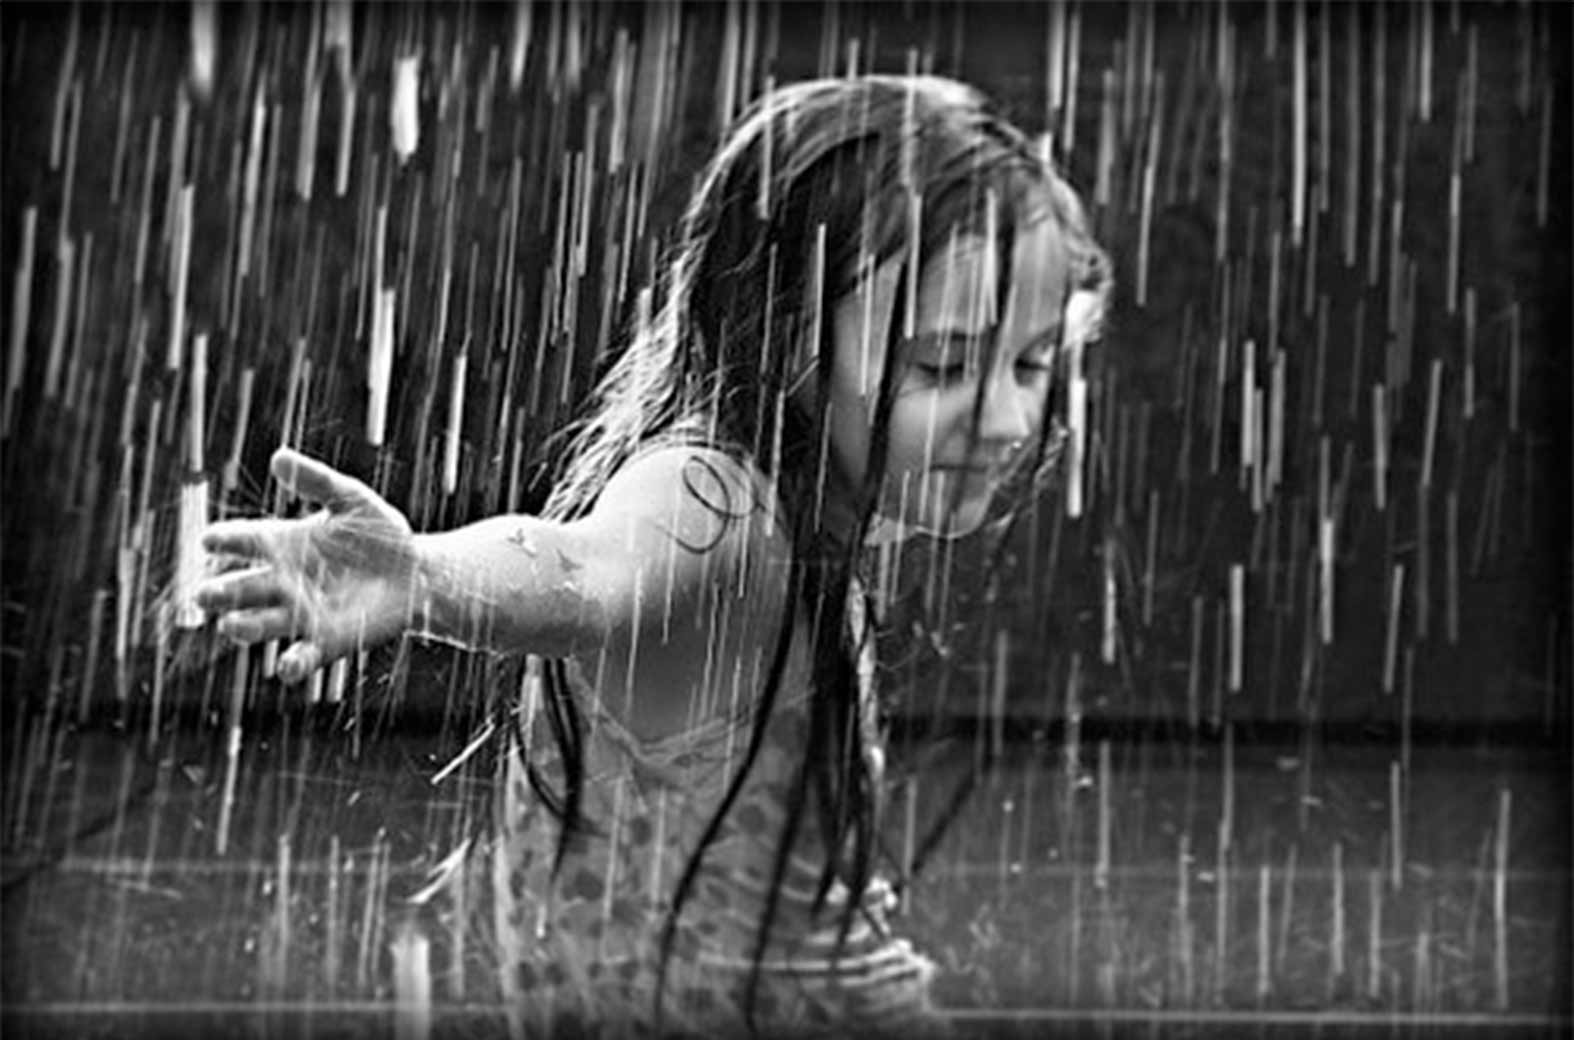 Young girl dancing in the rain embodies the raw power of photography